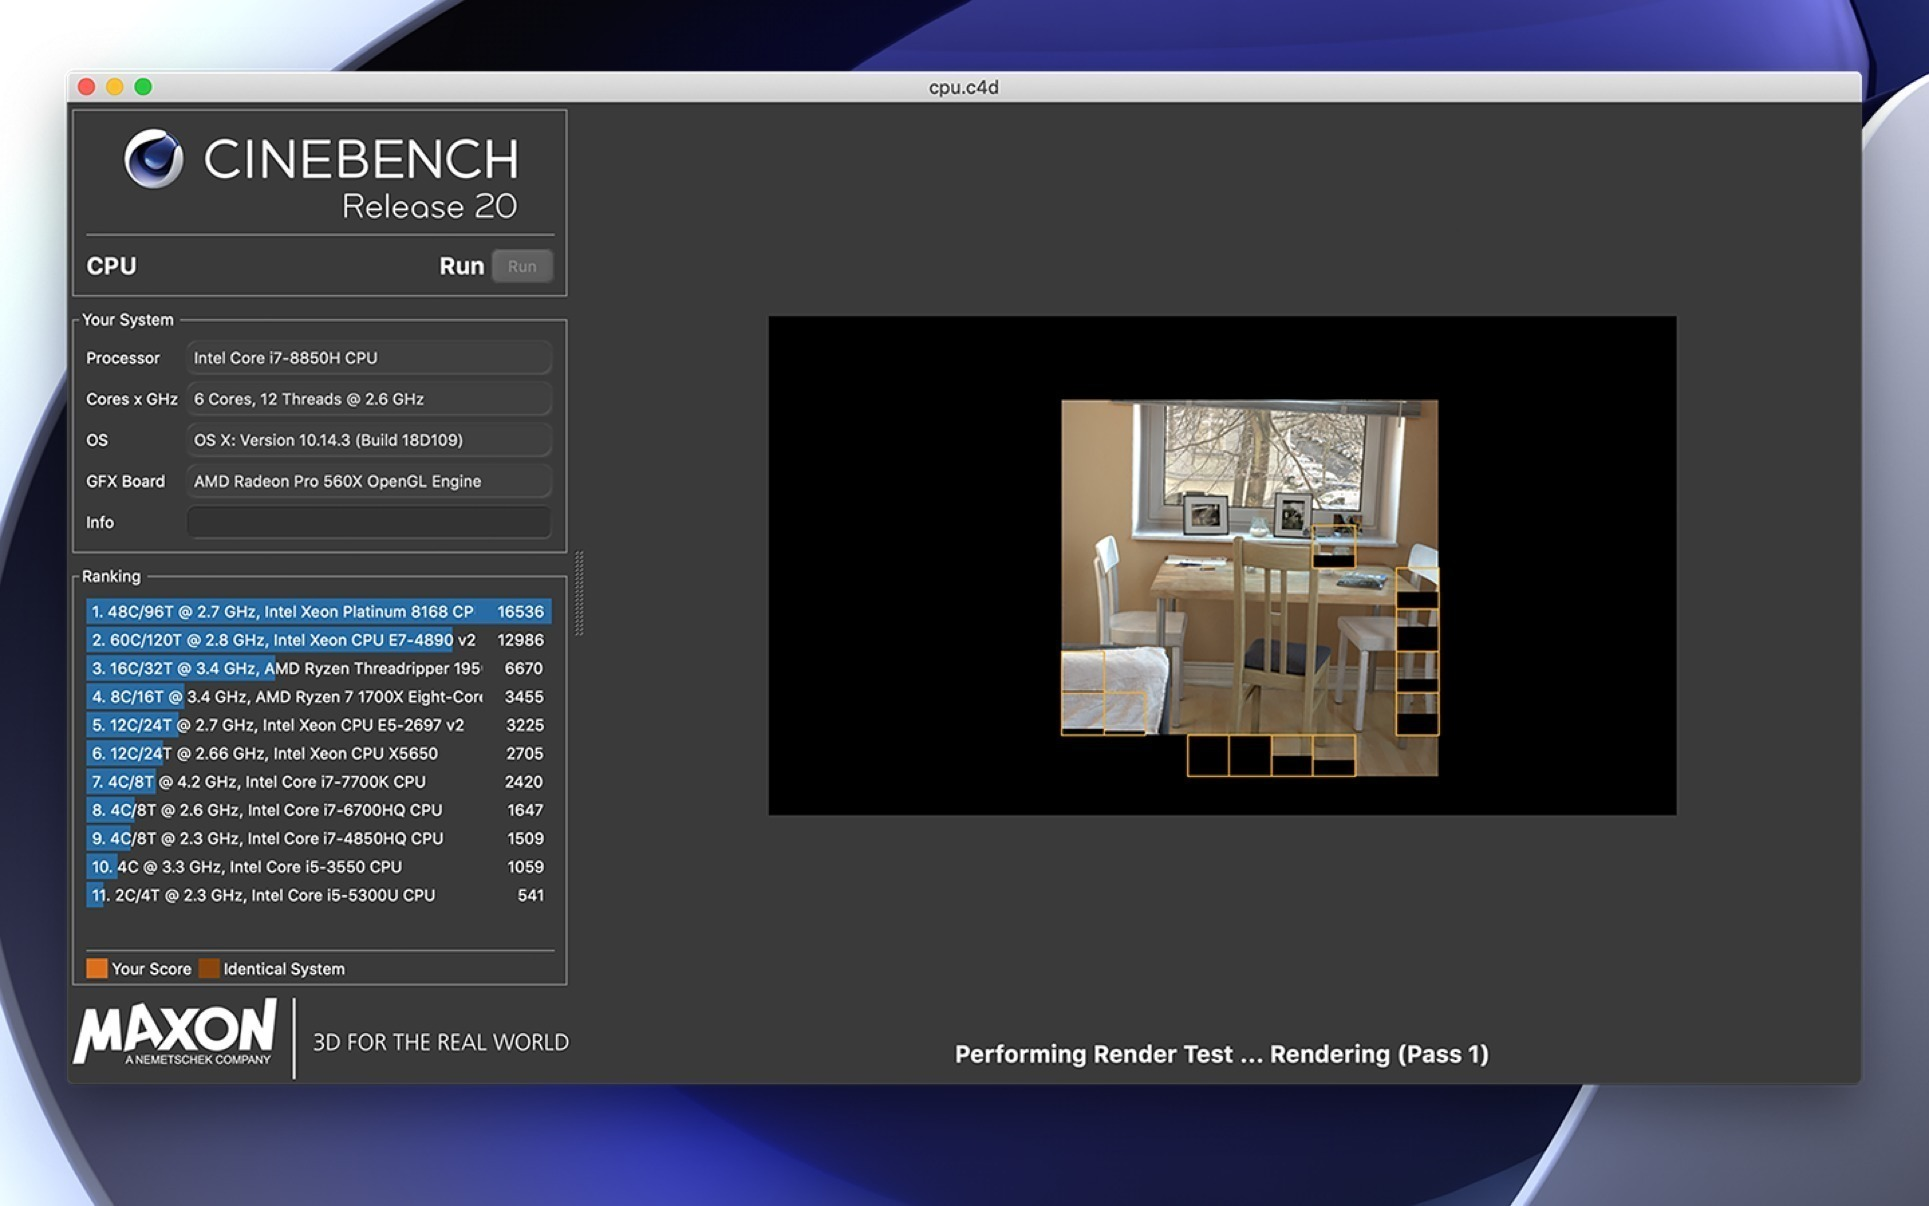 Cinebench 20 060 free download for Mac | MacUpdate